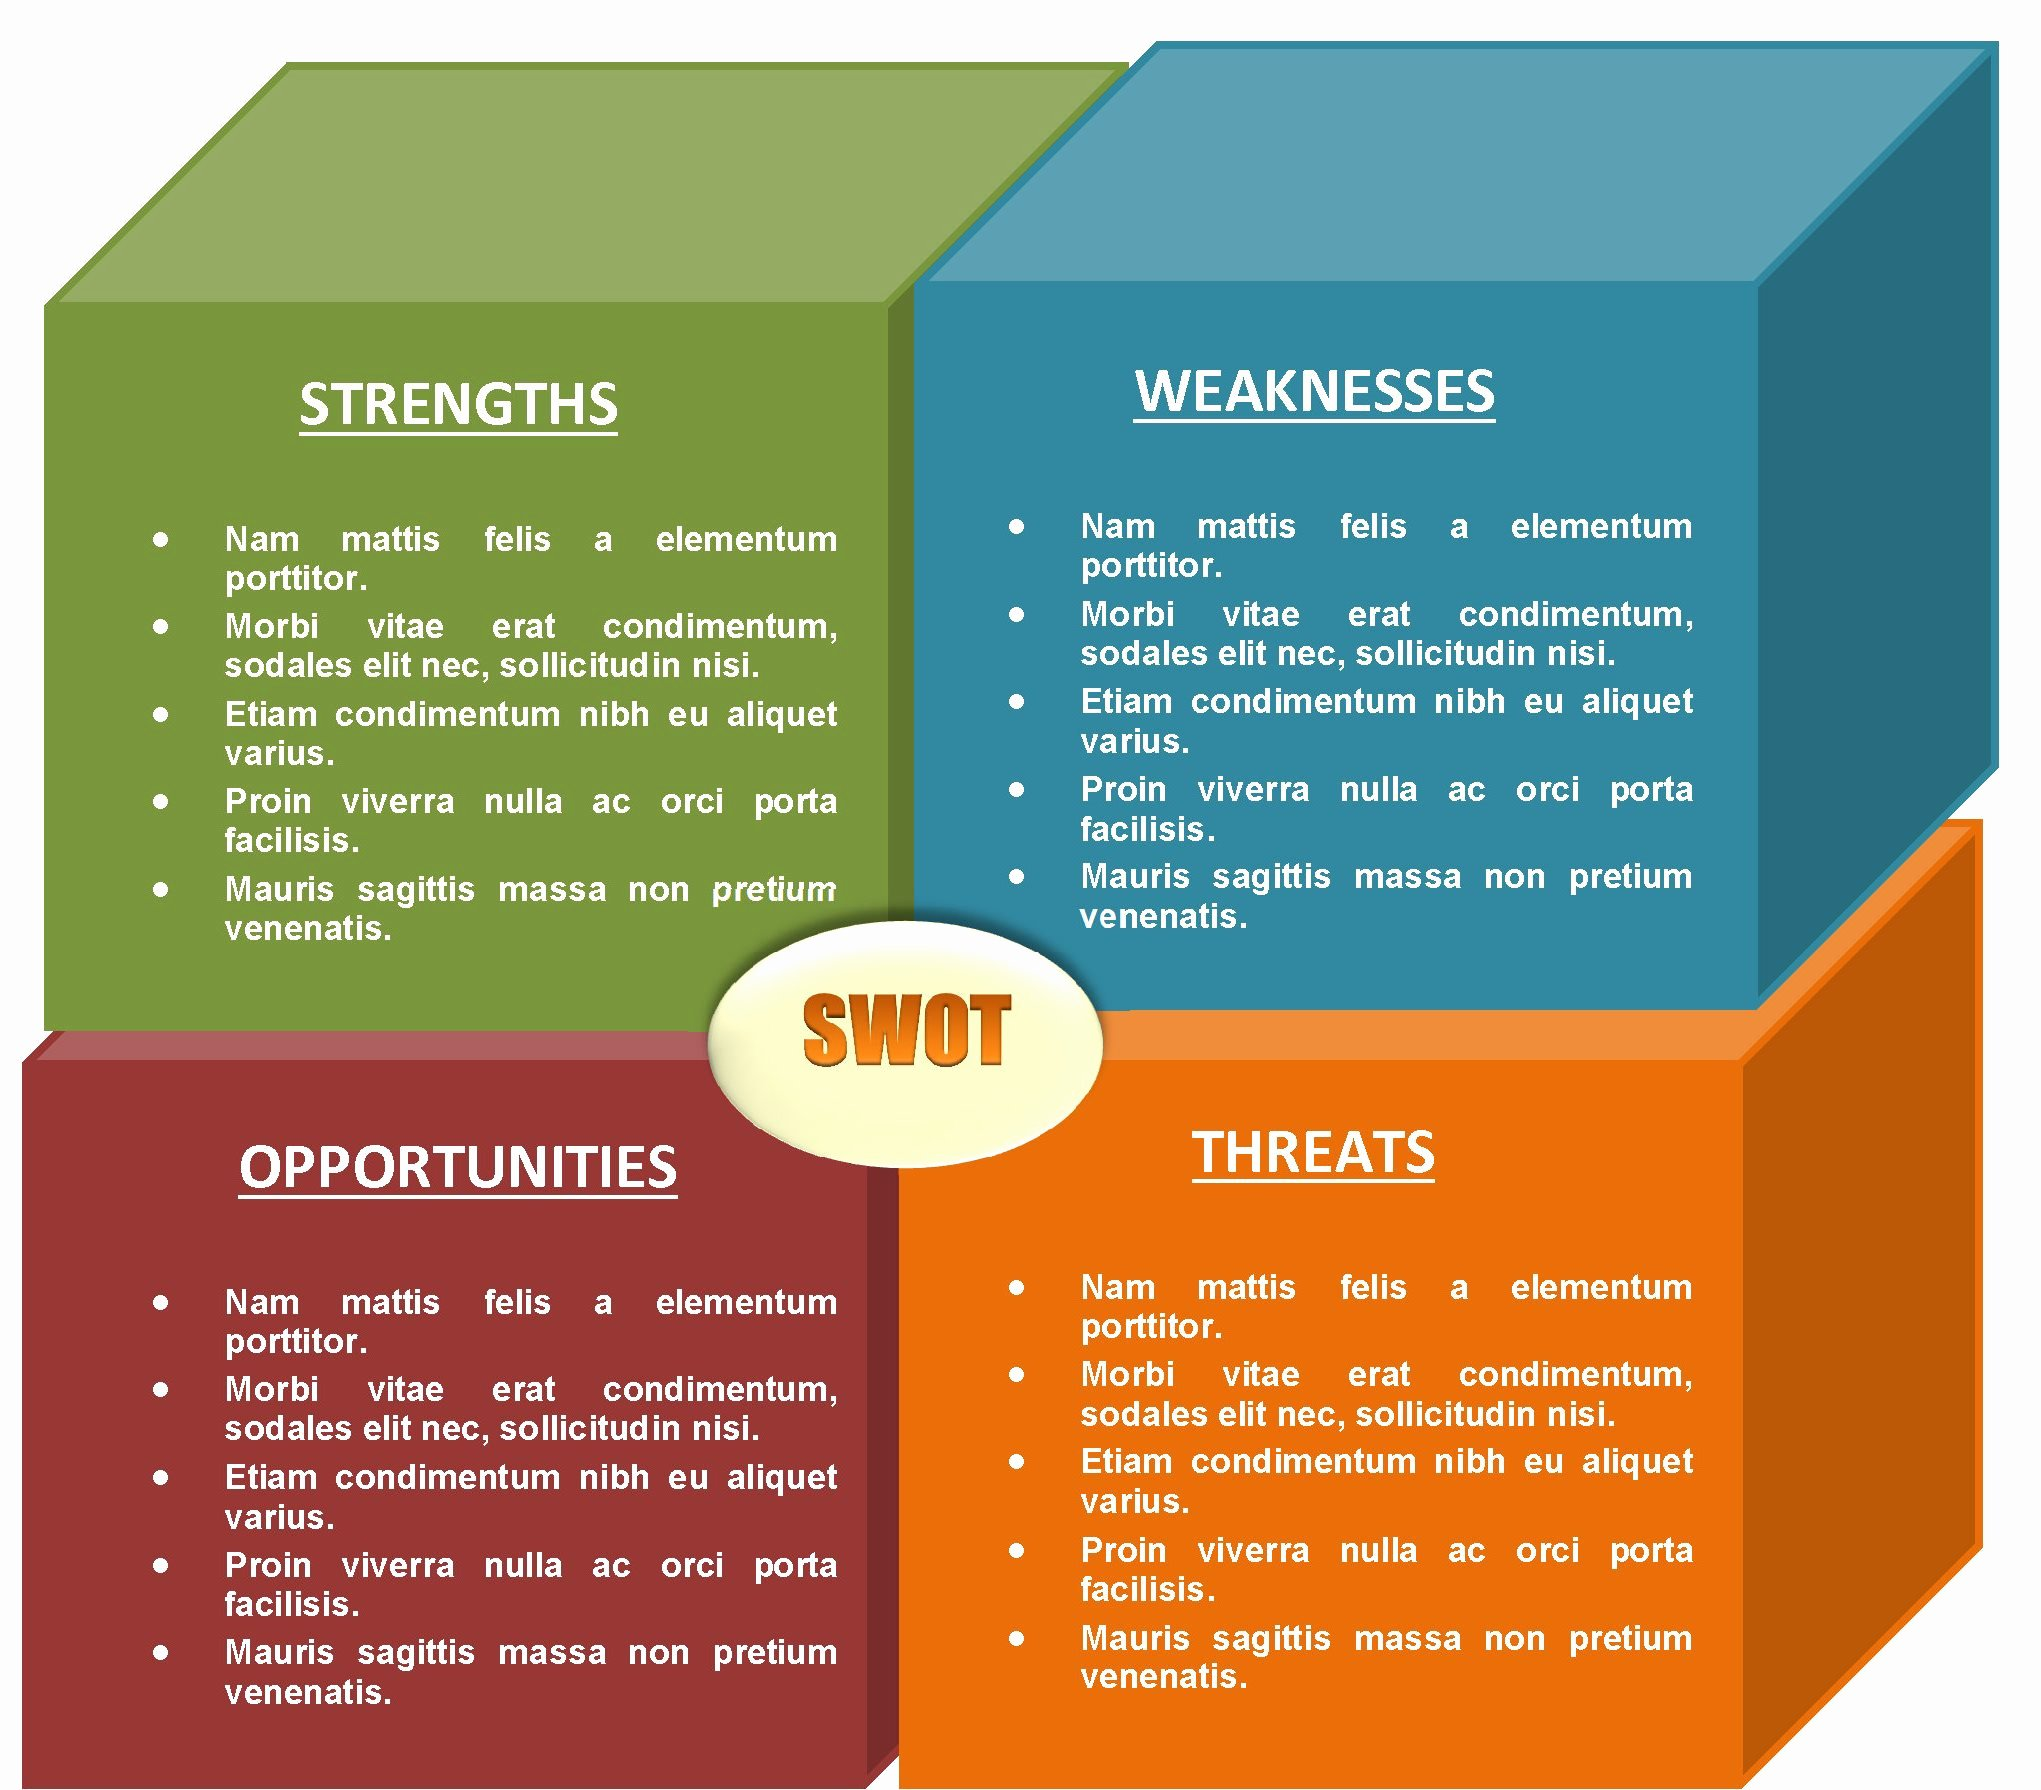 Swot Analysis Template Word Fresh 40 Free Swot Analysis Templates In Word Demplates